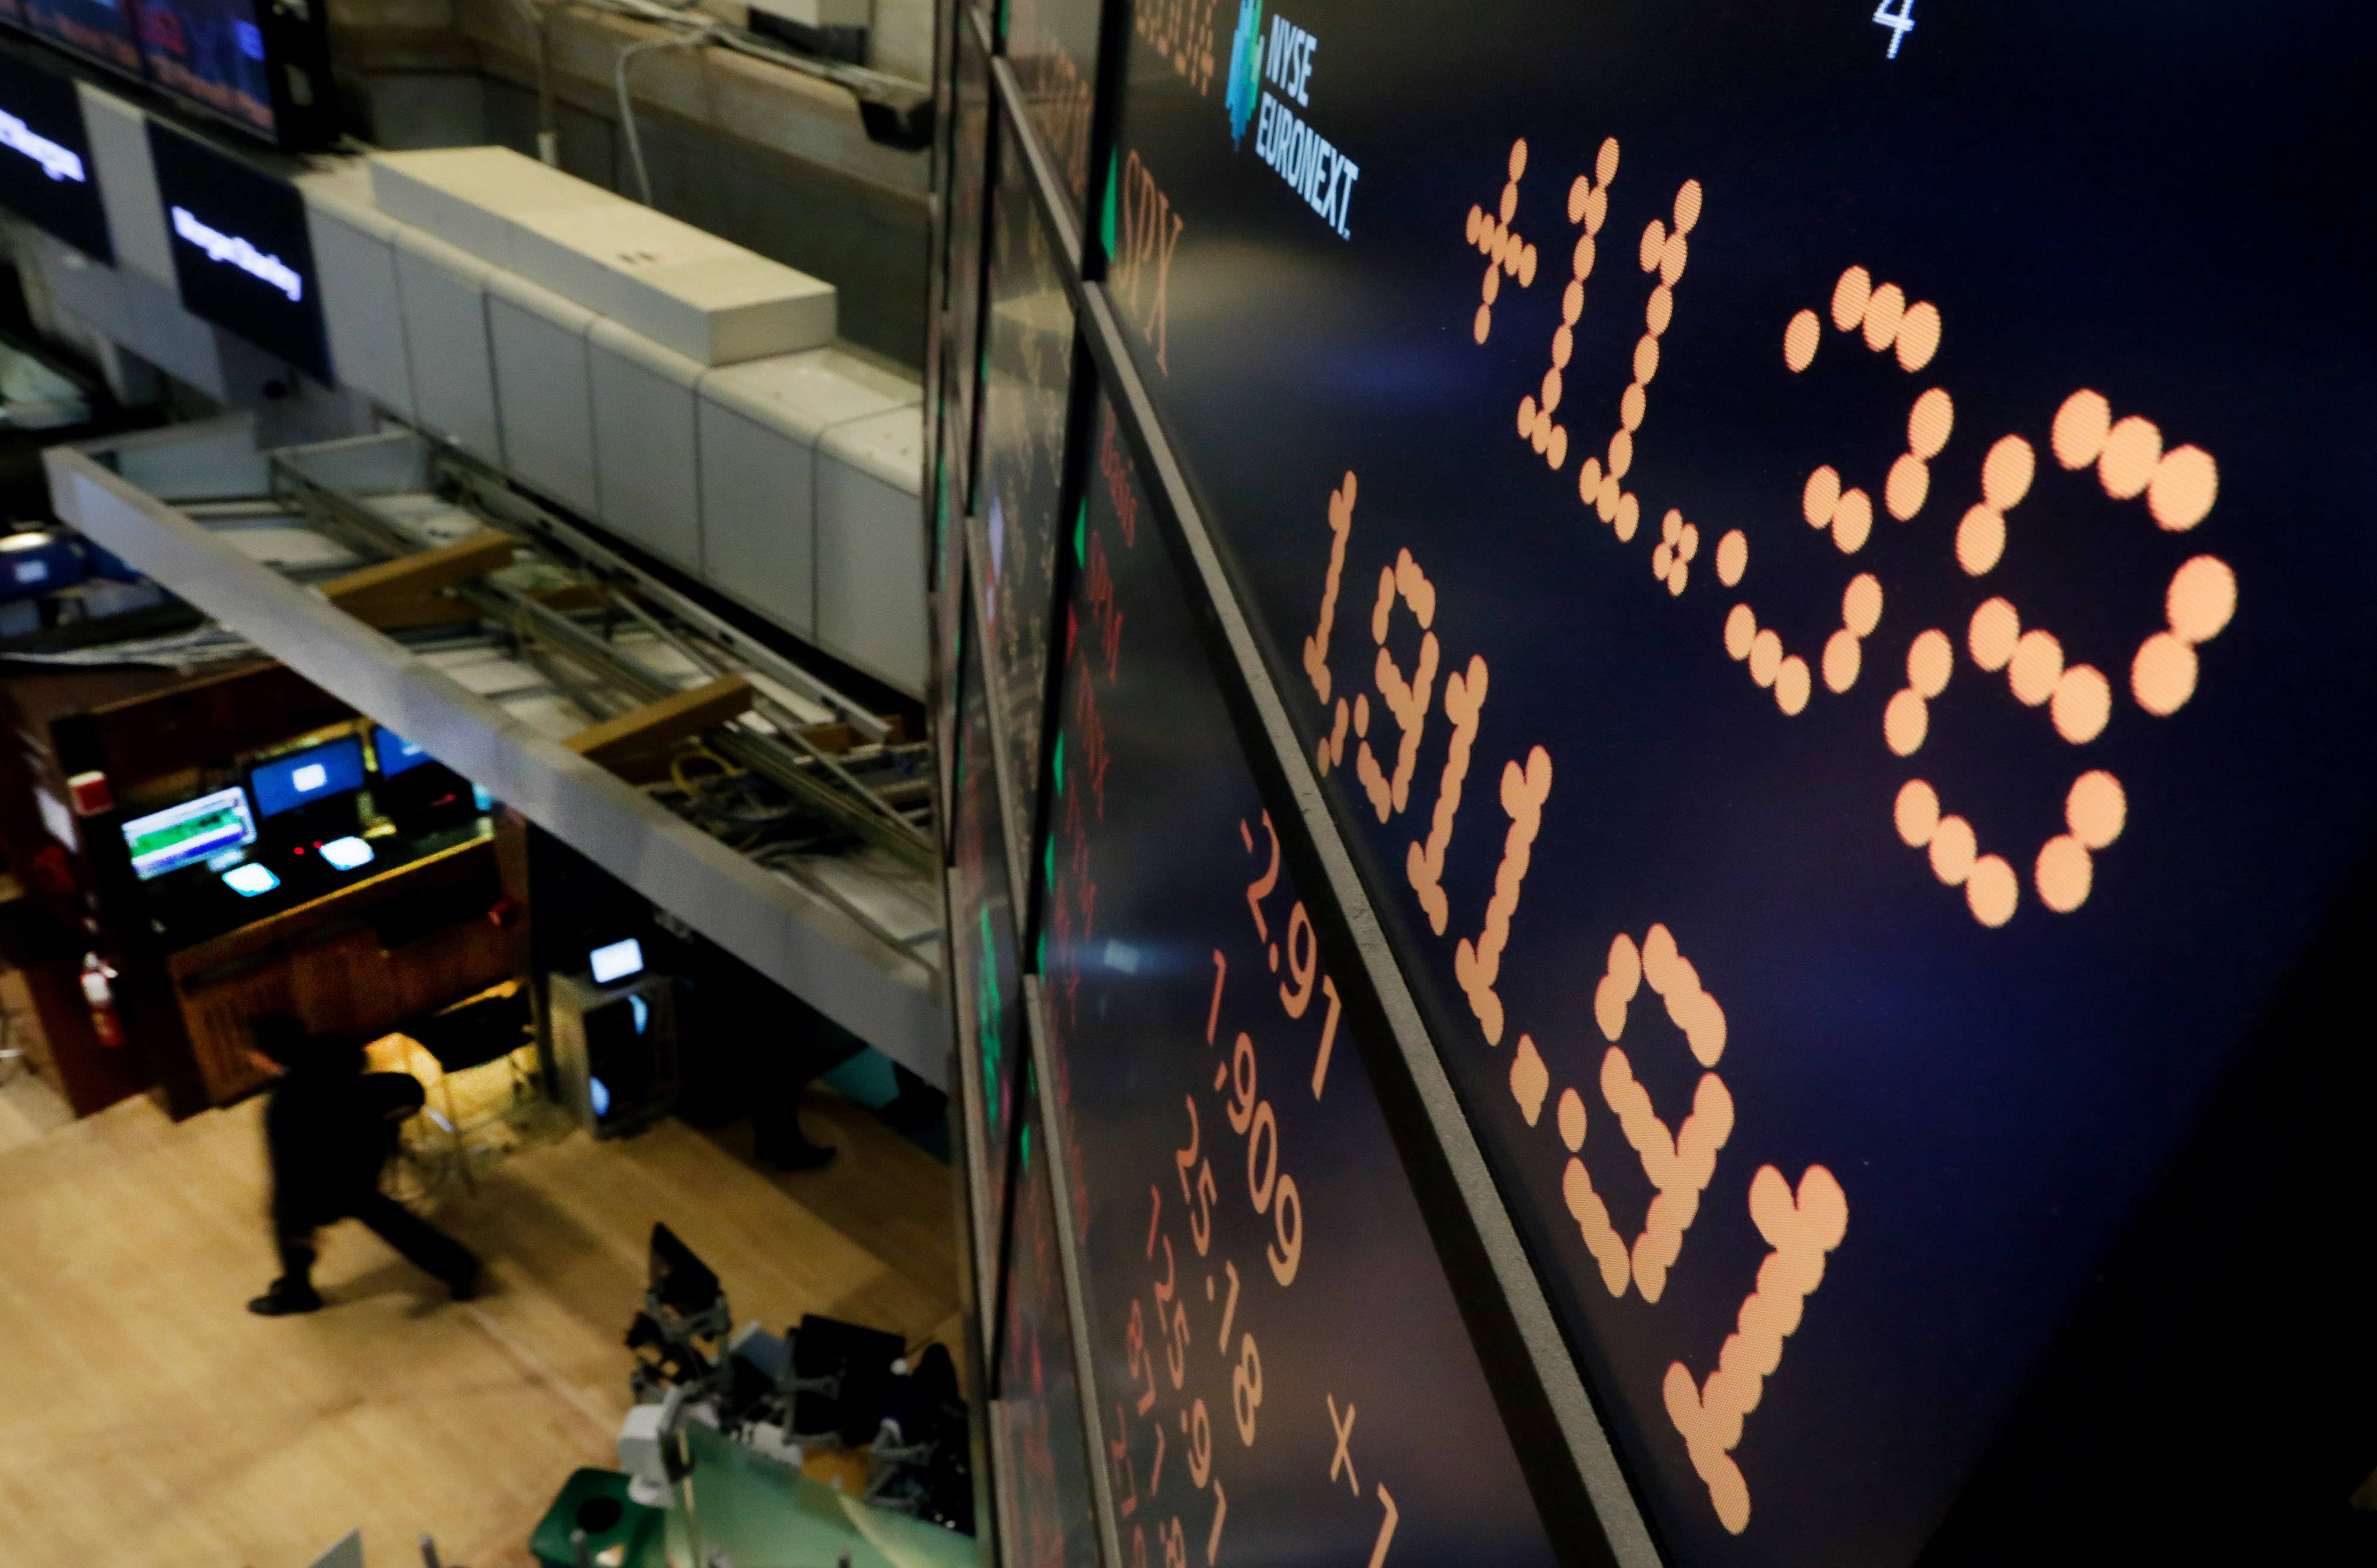 More promising signs the economy is strengthening after its winter slowdown pushed stocks higher on Tuesday. The Standard & Poor's 500 index rose for the fourth straight day and ended at another all-time high, 1,911.